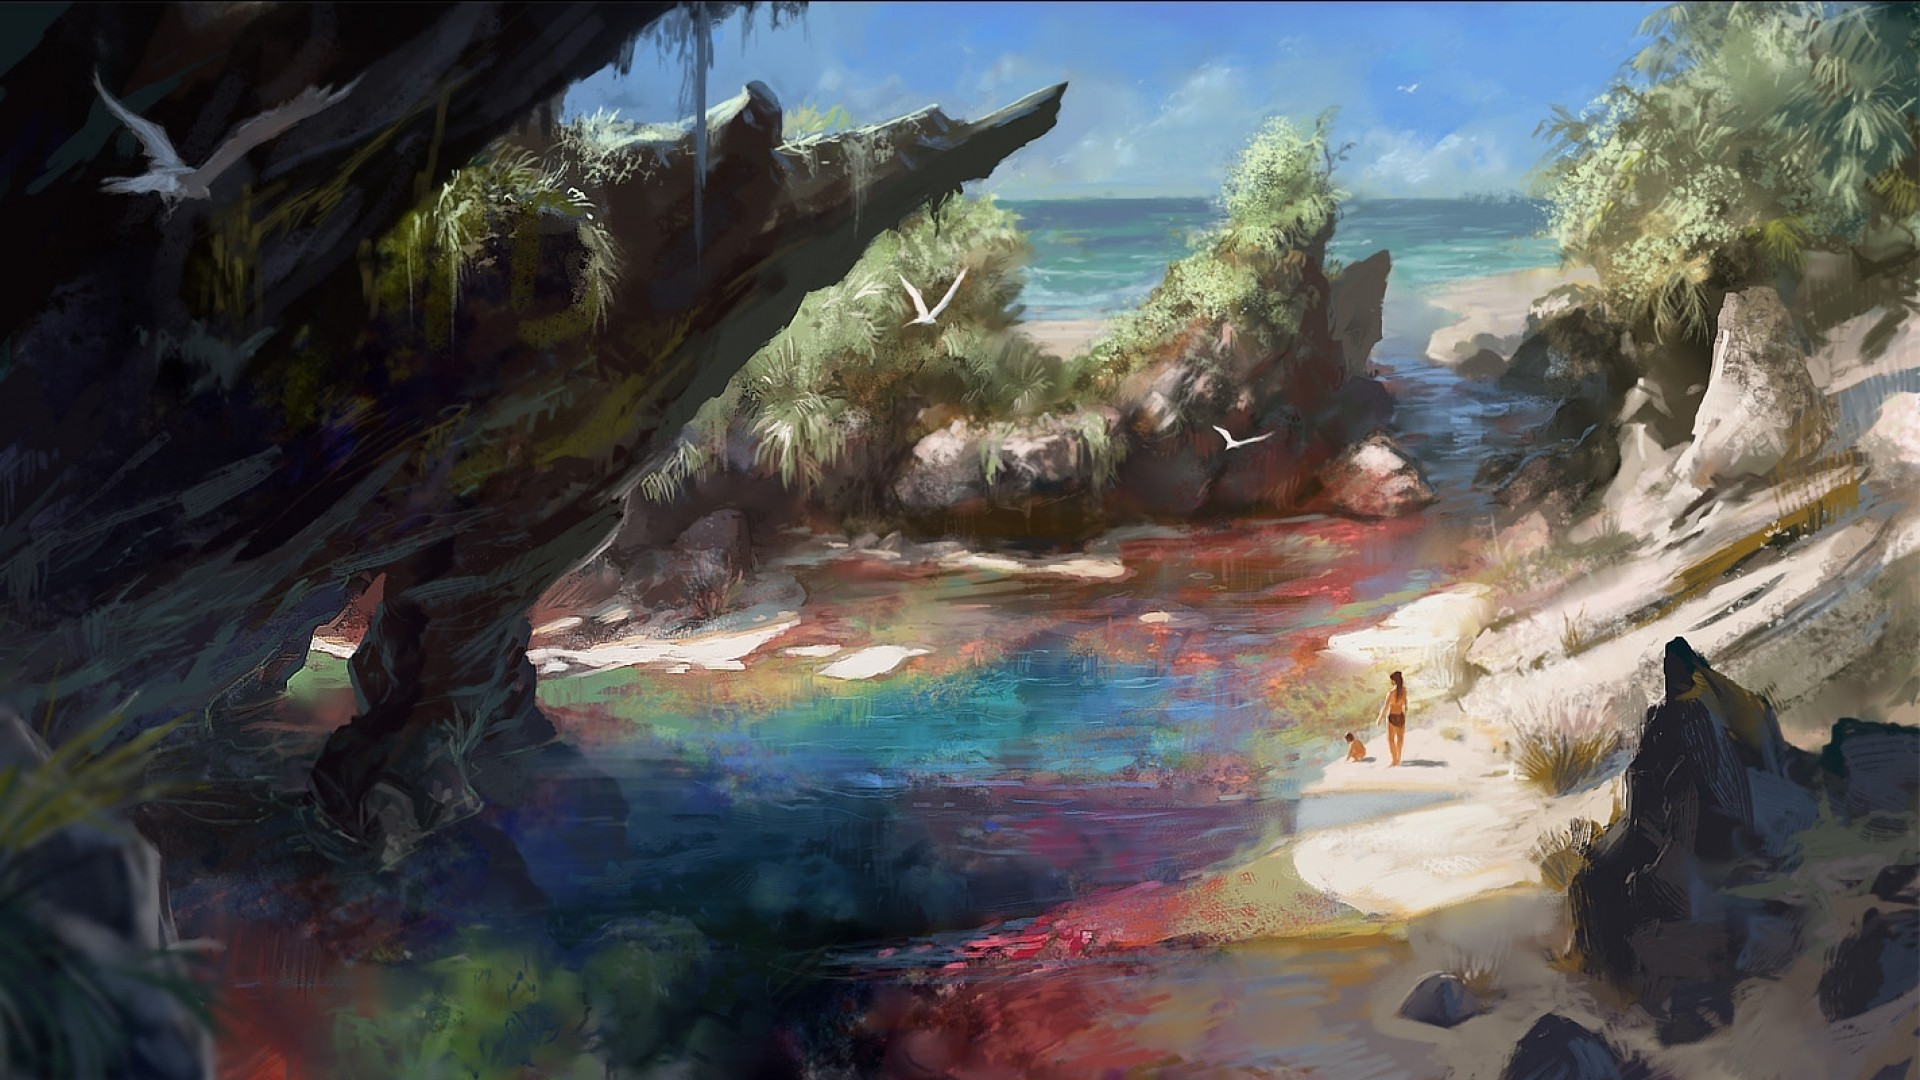 Epic 3d Movie Wallpapers Artwork Fantasy Art Beach Colorful Sea Nature